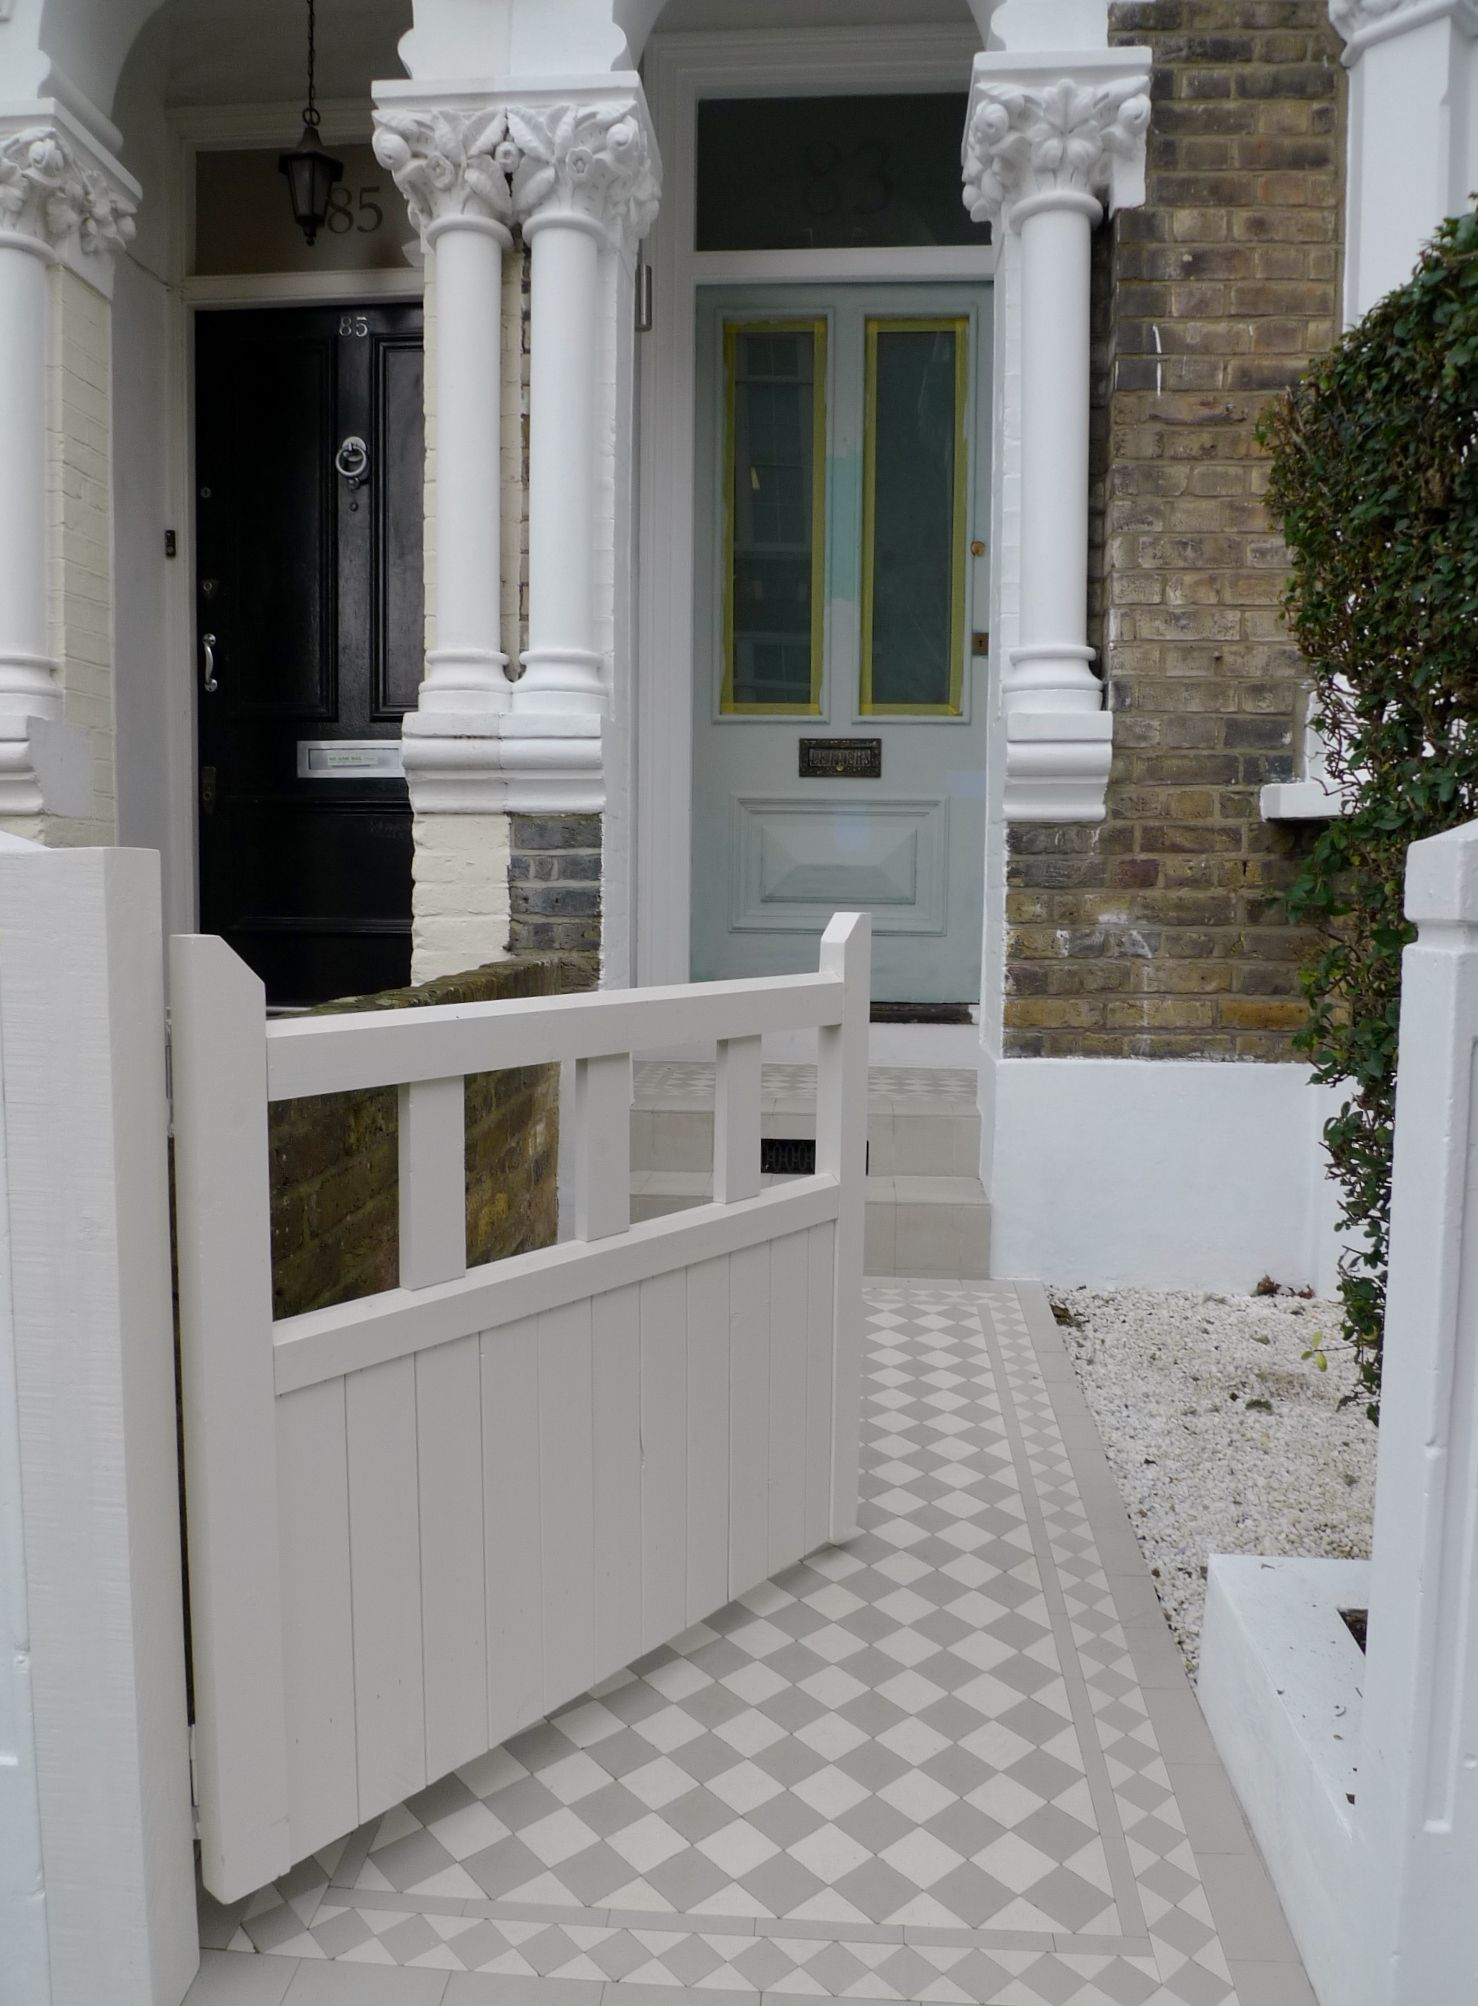 Front Garden Ideas London front garden design battersea clapham balham london | period homes